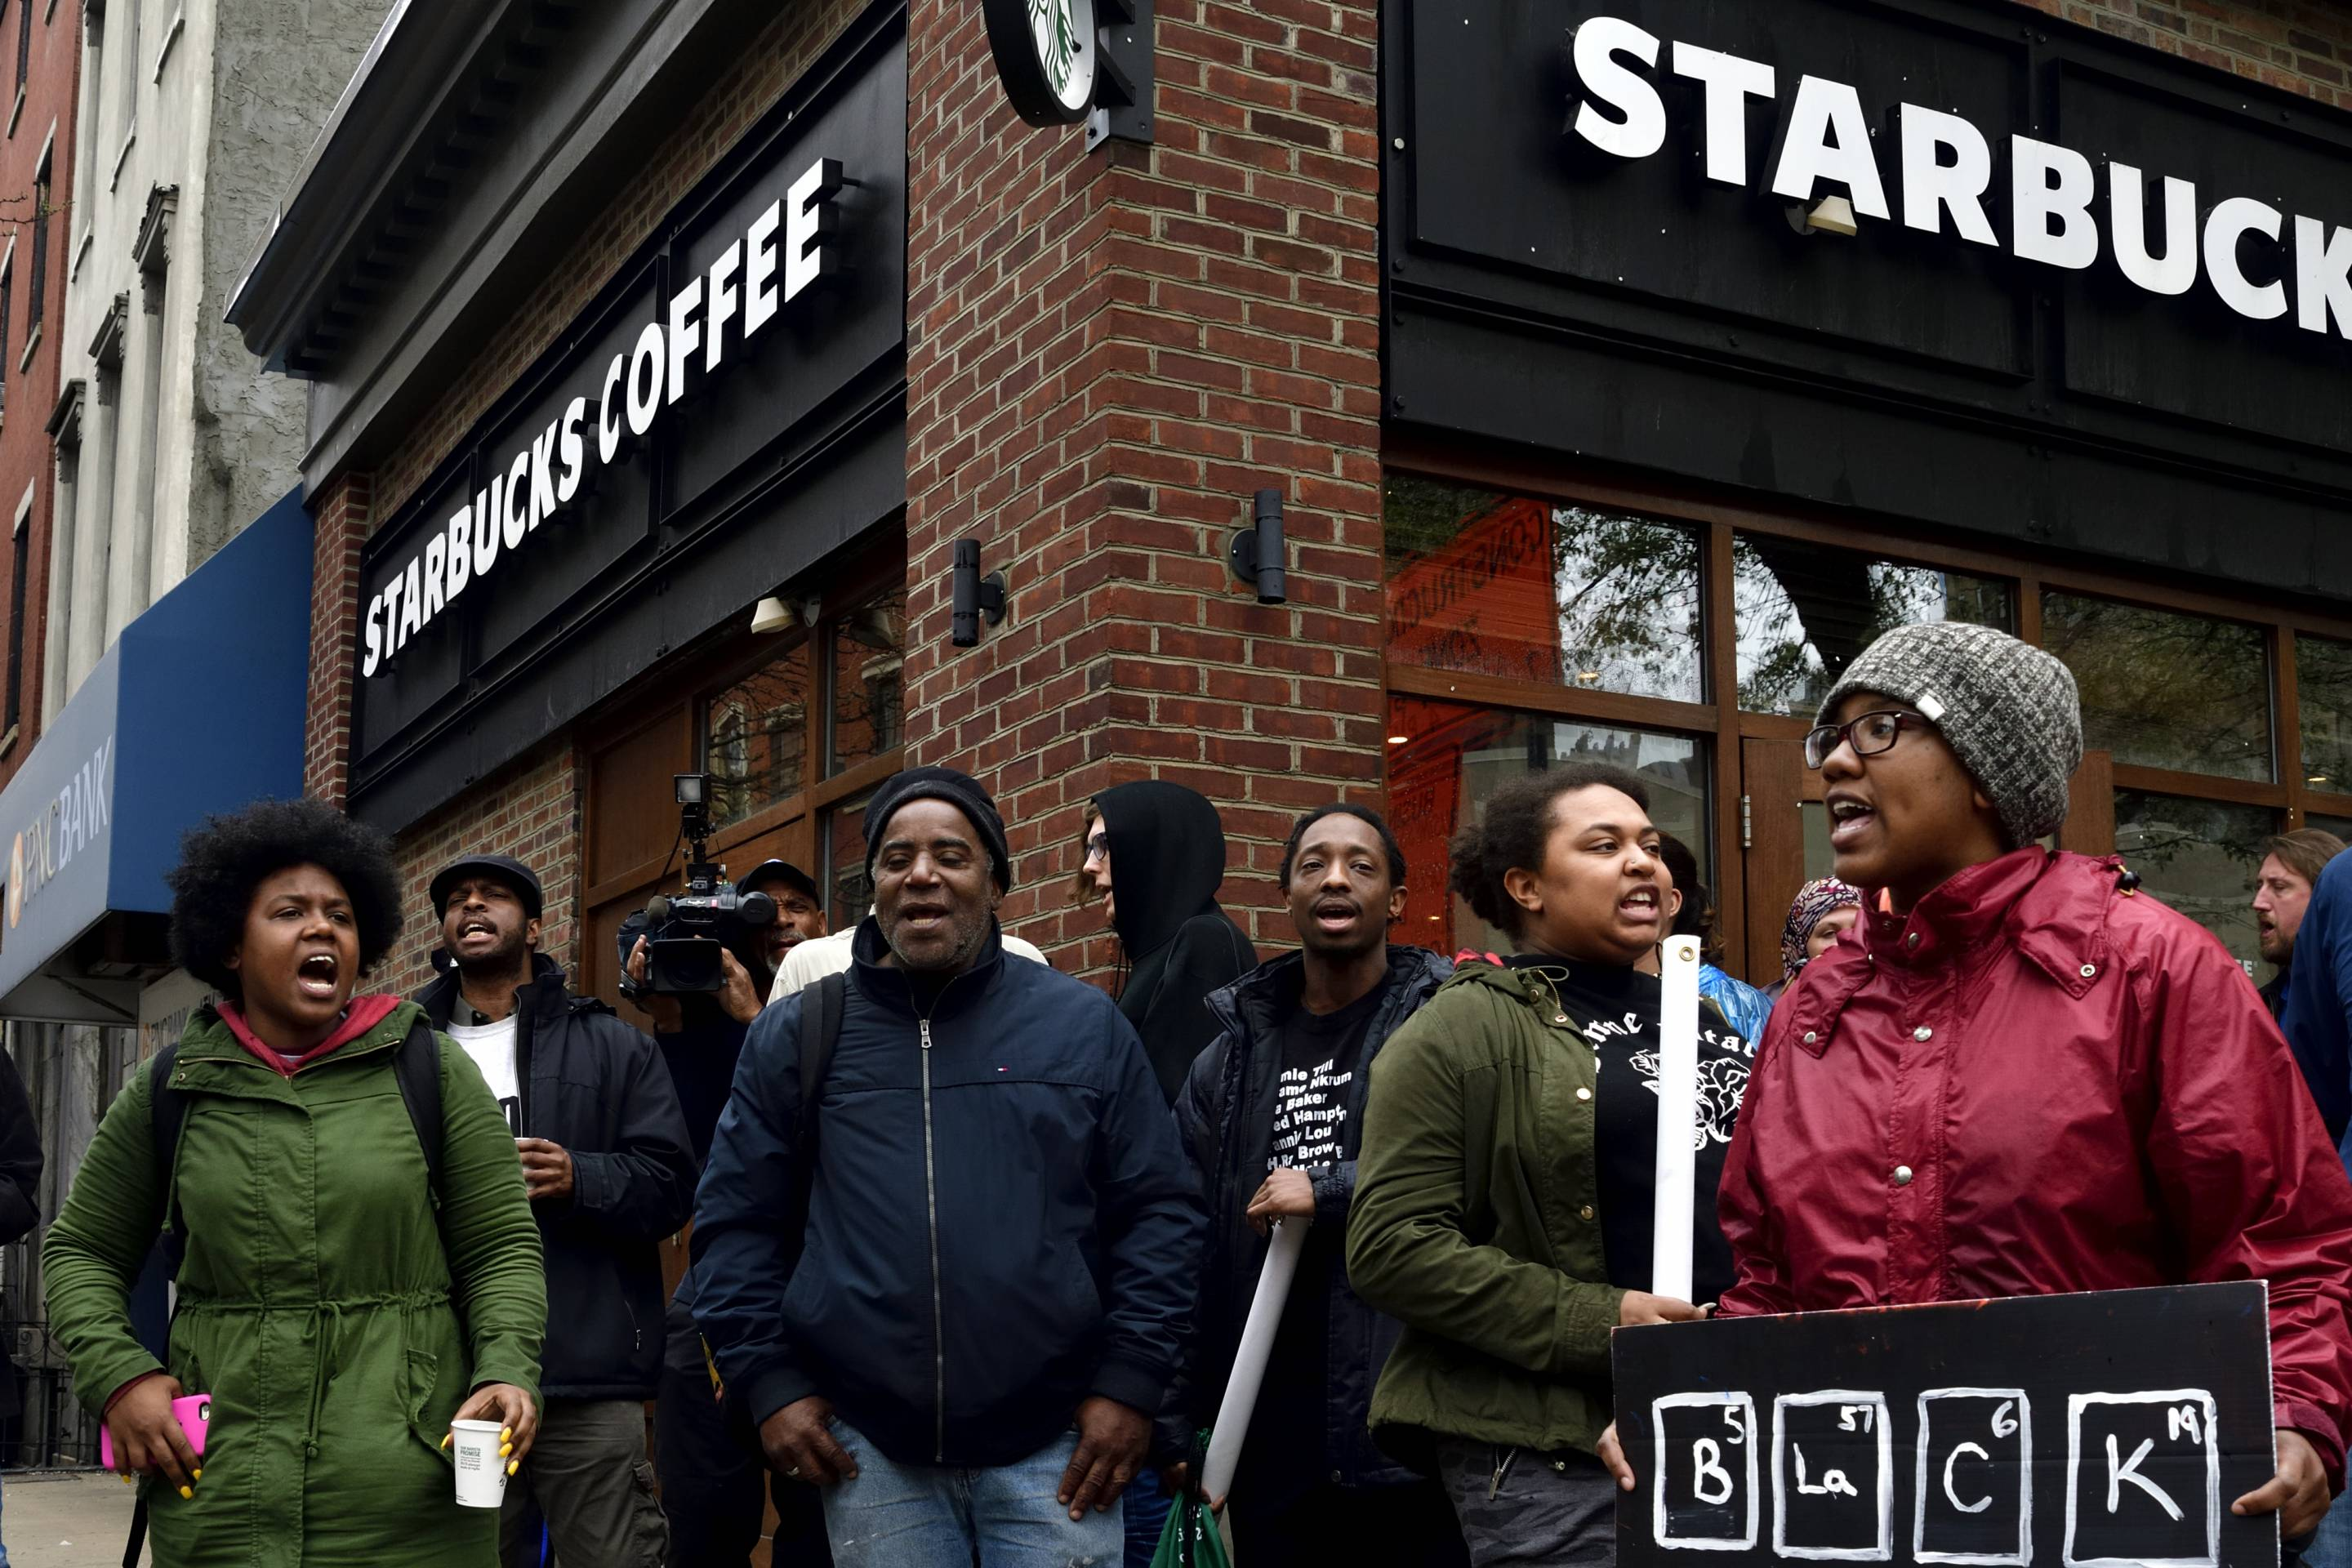 People gather on April 16, 2018 to protest at a Starbucks in Philadelphia, where days earlier two black men were arrested.